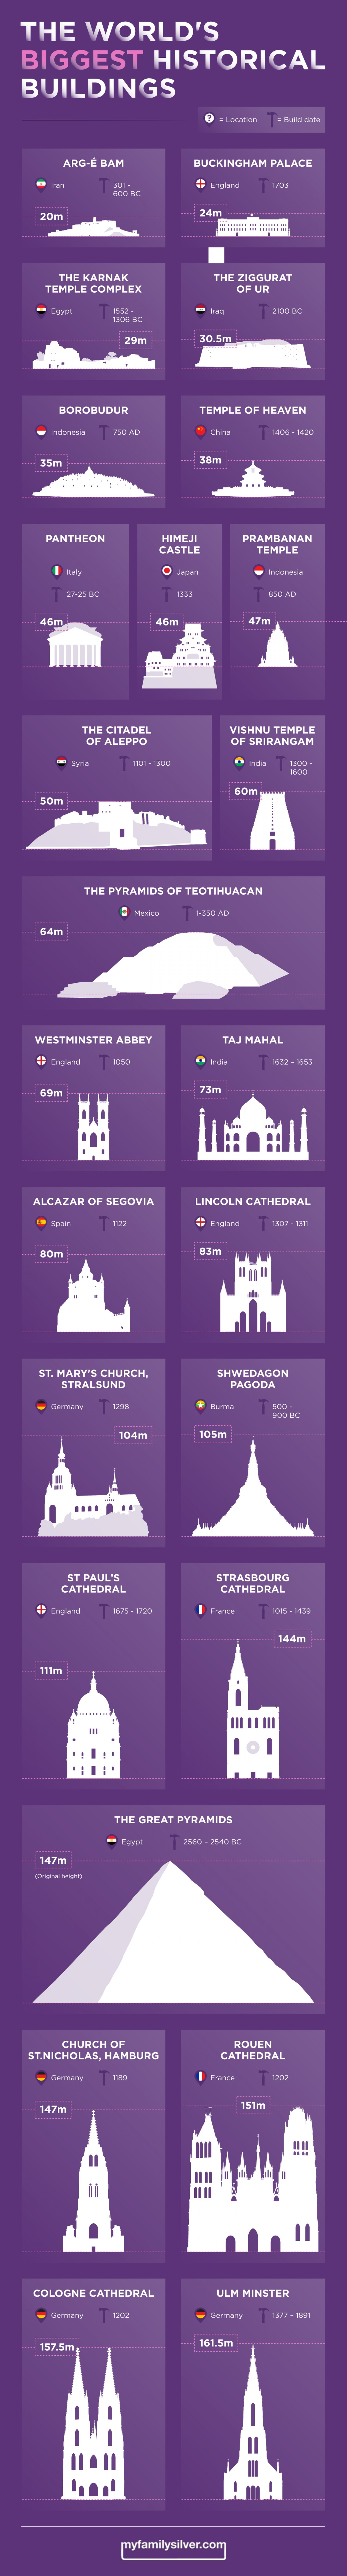 The World's Biggest Historical Buildings